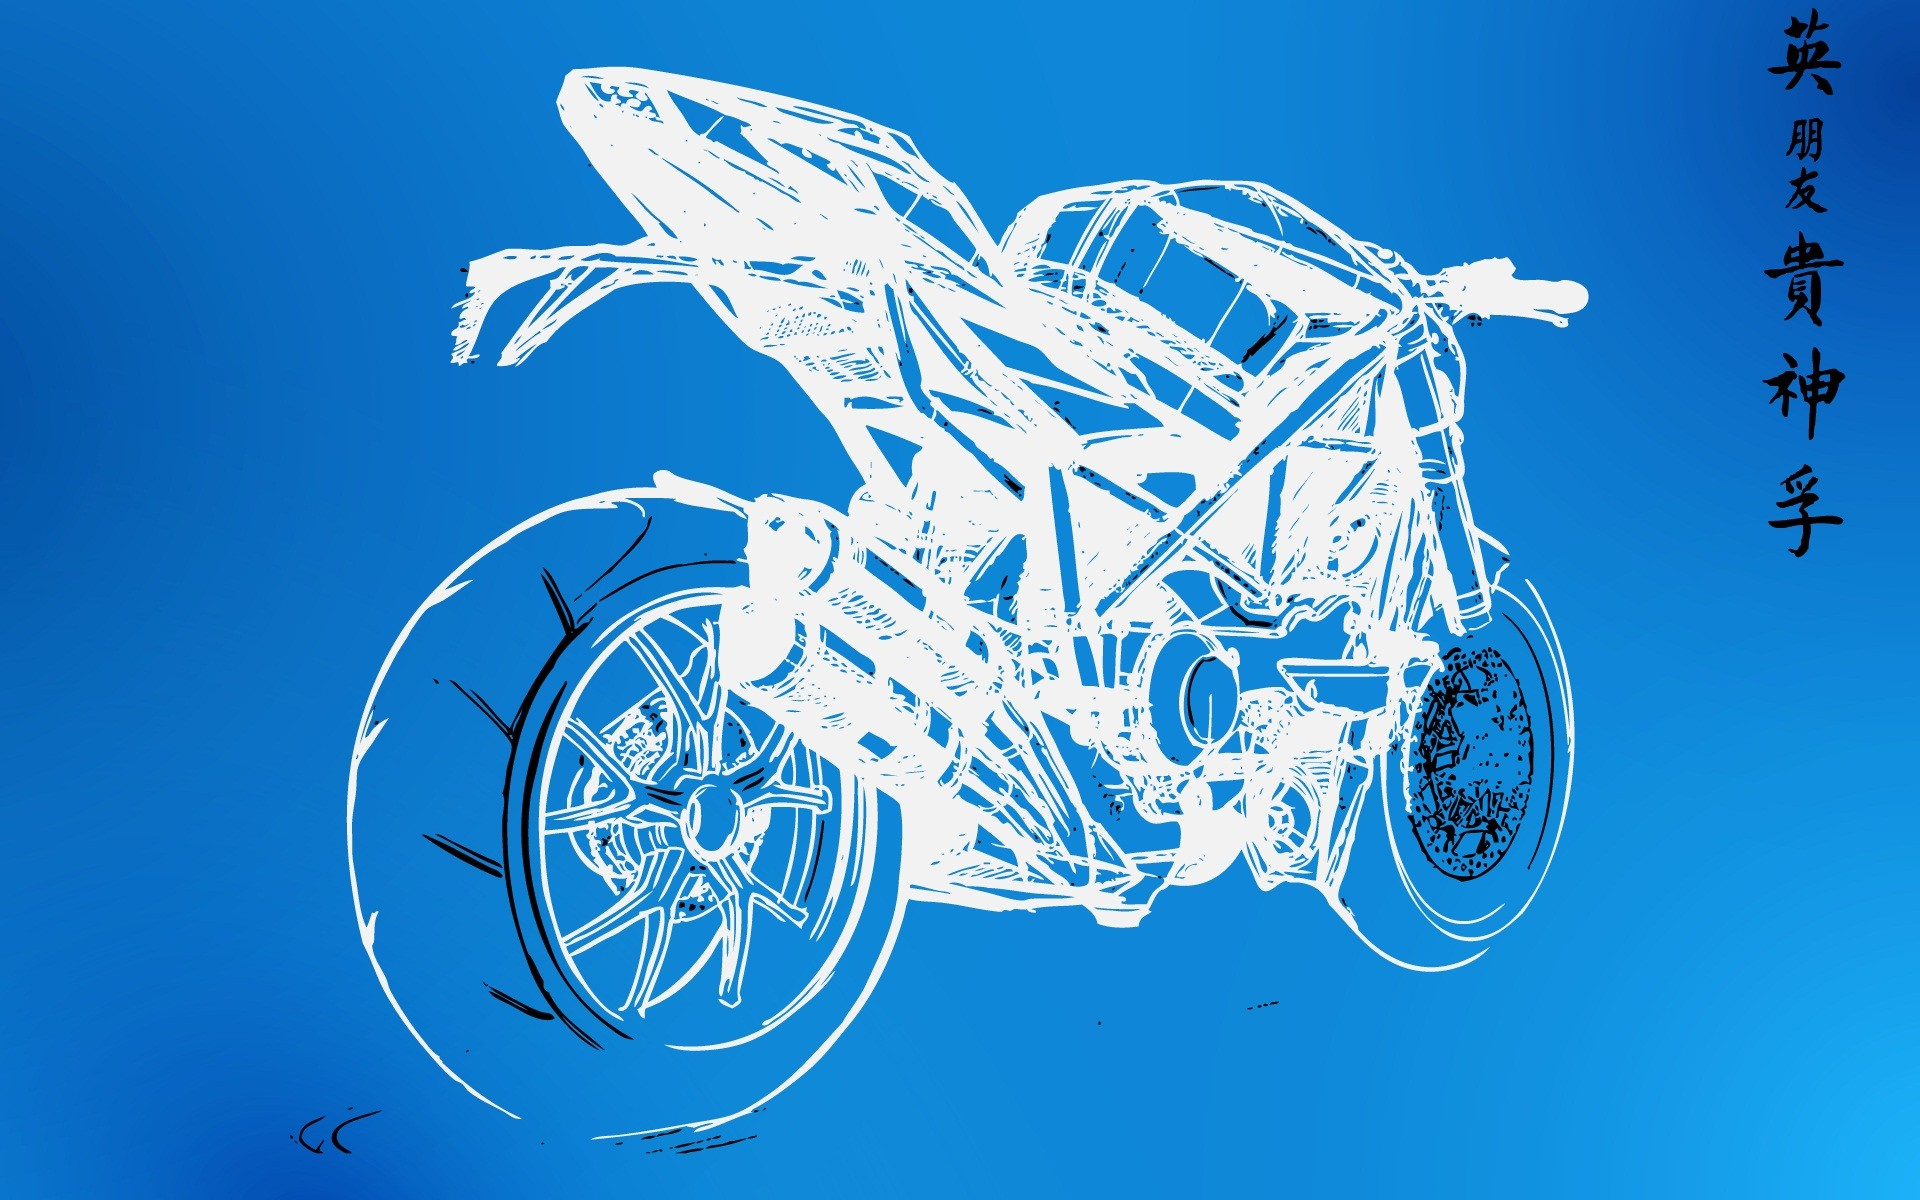 Wall sketches motorbikes graphic blueprint wallpaper 1920x1200 wall sketches motorbikes graphic blueprint wallpaper 1920x1200 62971 wallpaperup malvernweather Gallery